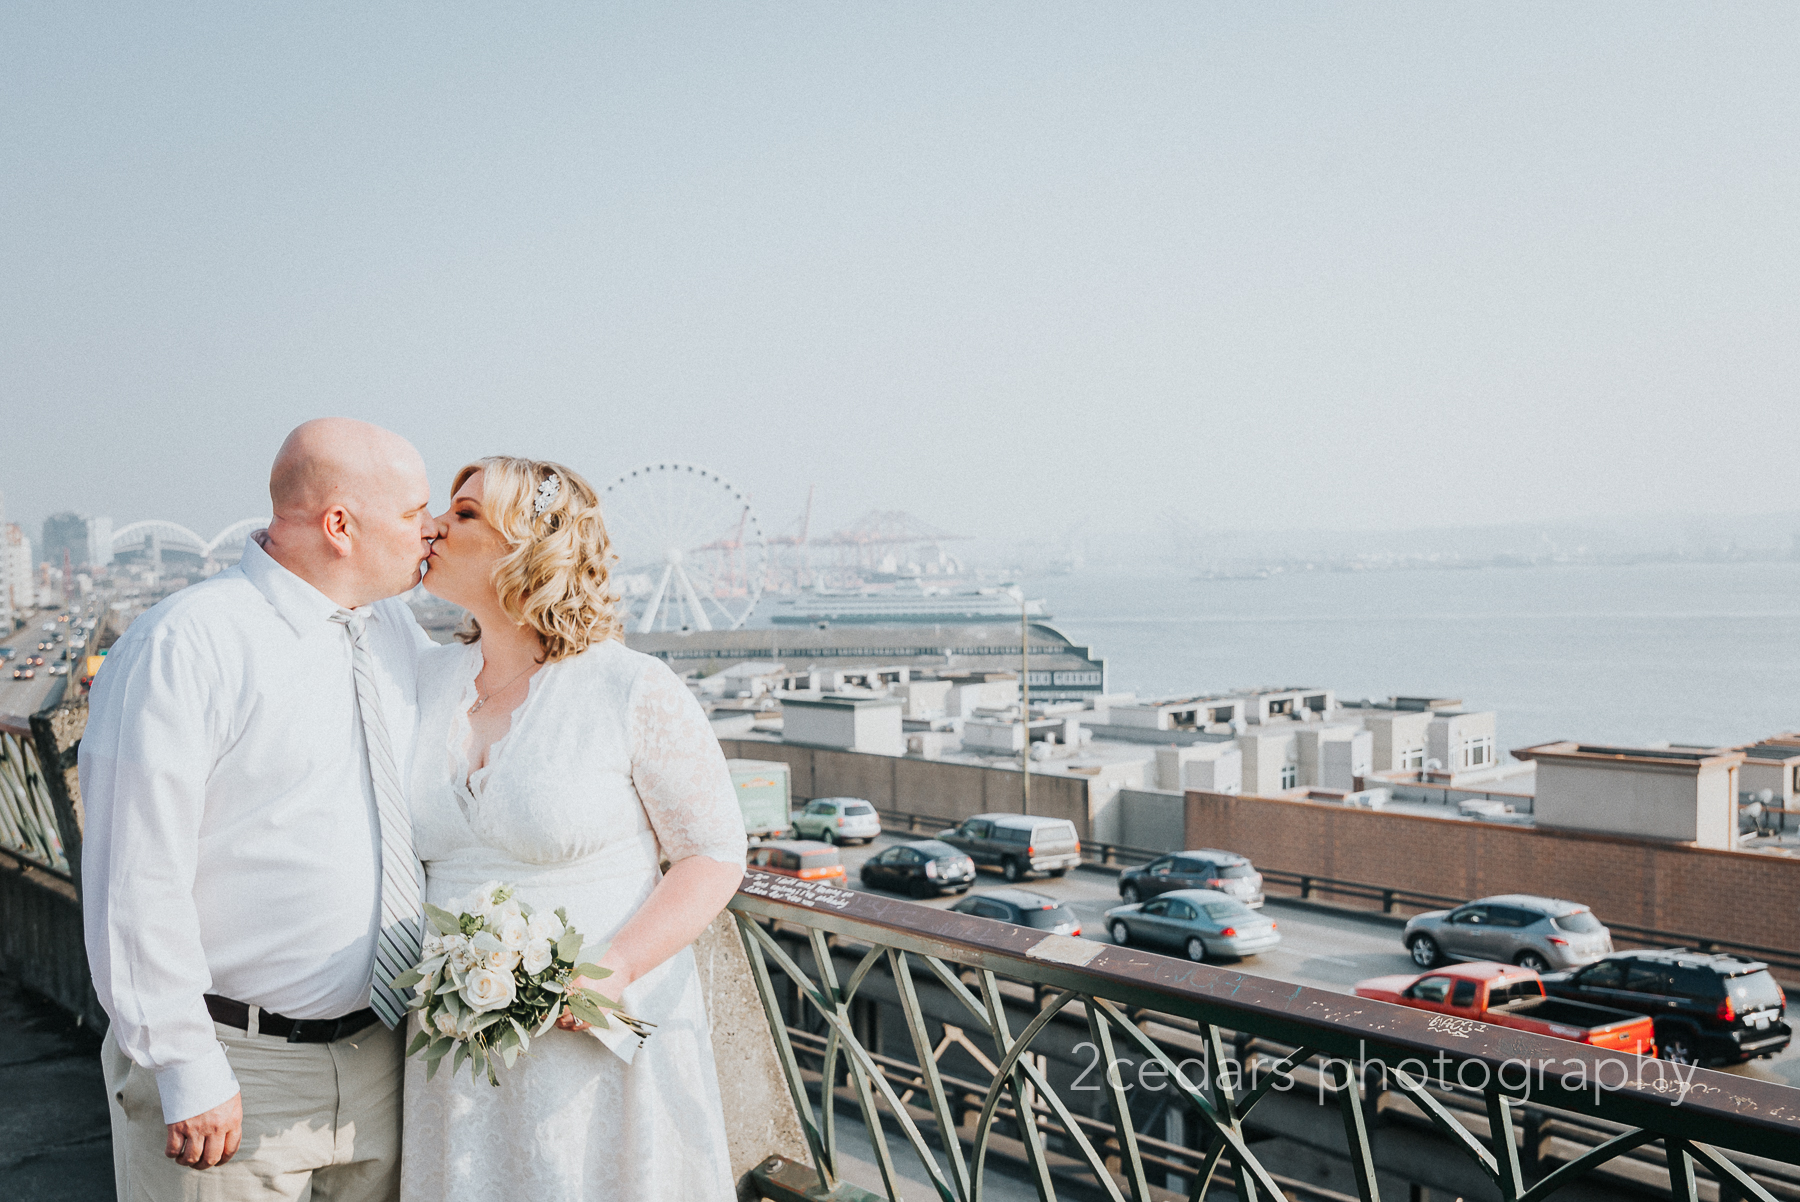 Downtown Seattle Courthouse Elopement - 2 Cedars Photography Weddings